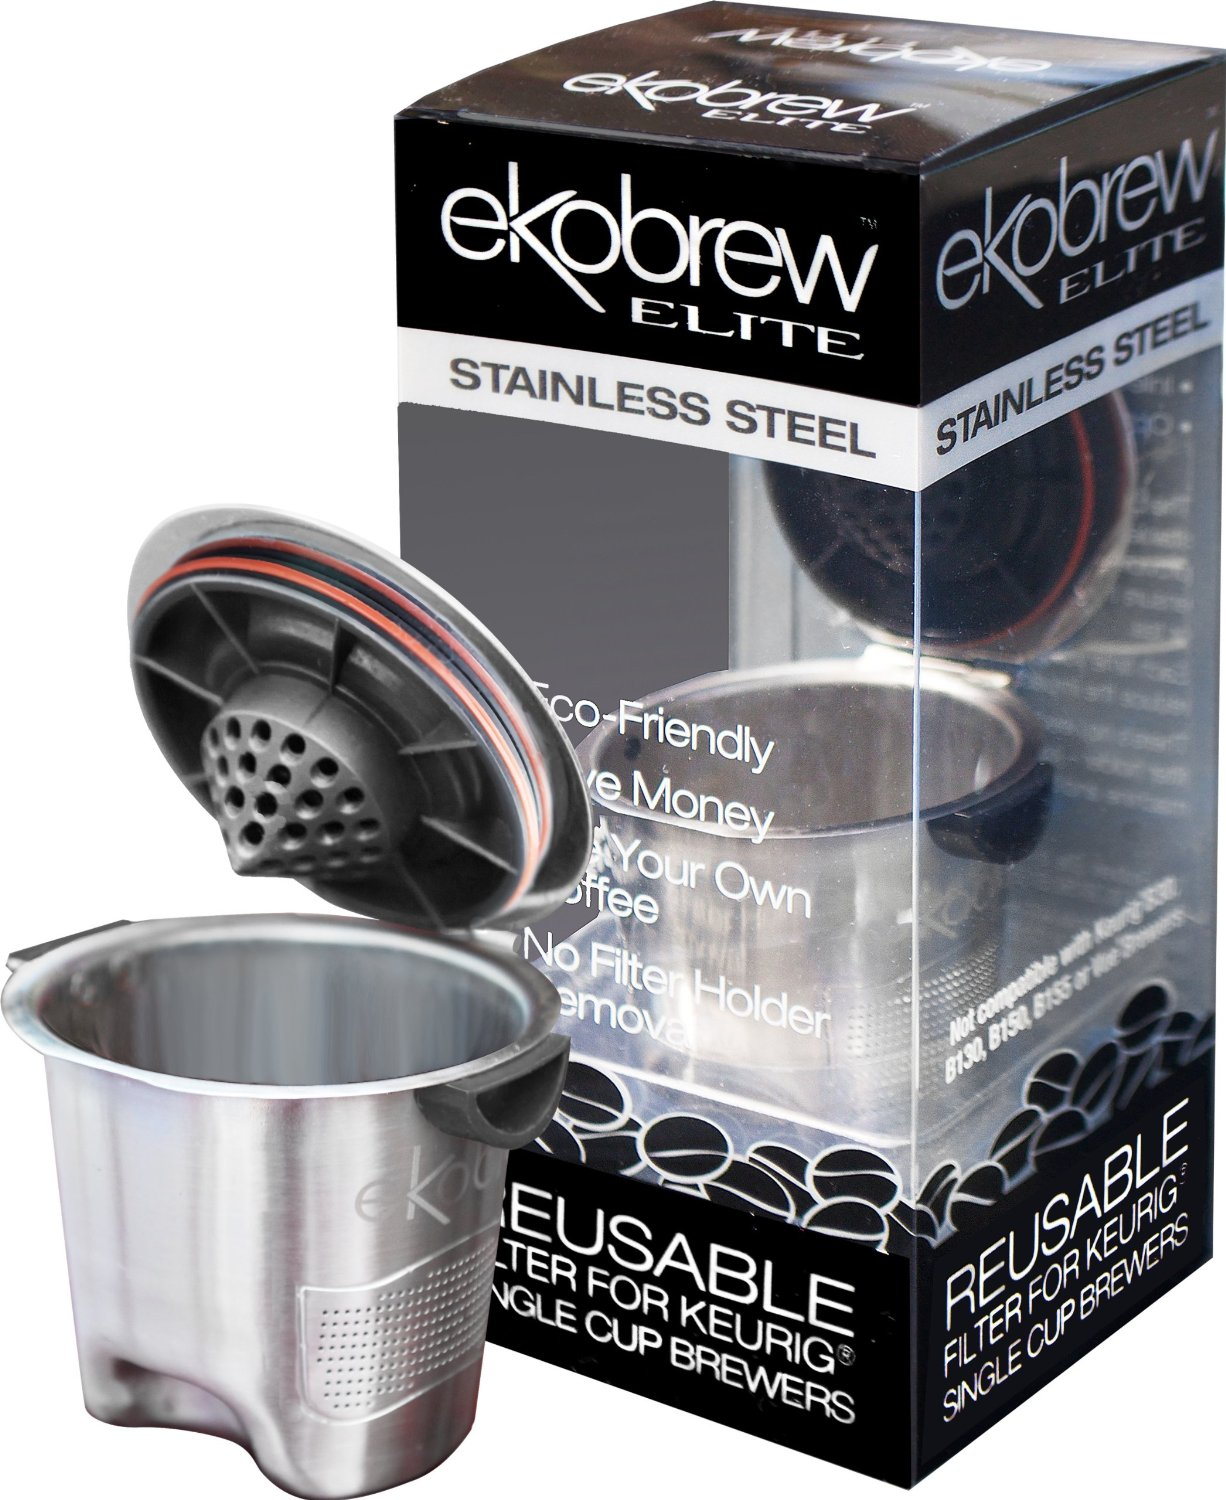 Ekobrew Reusable K-cup